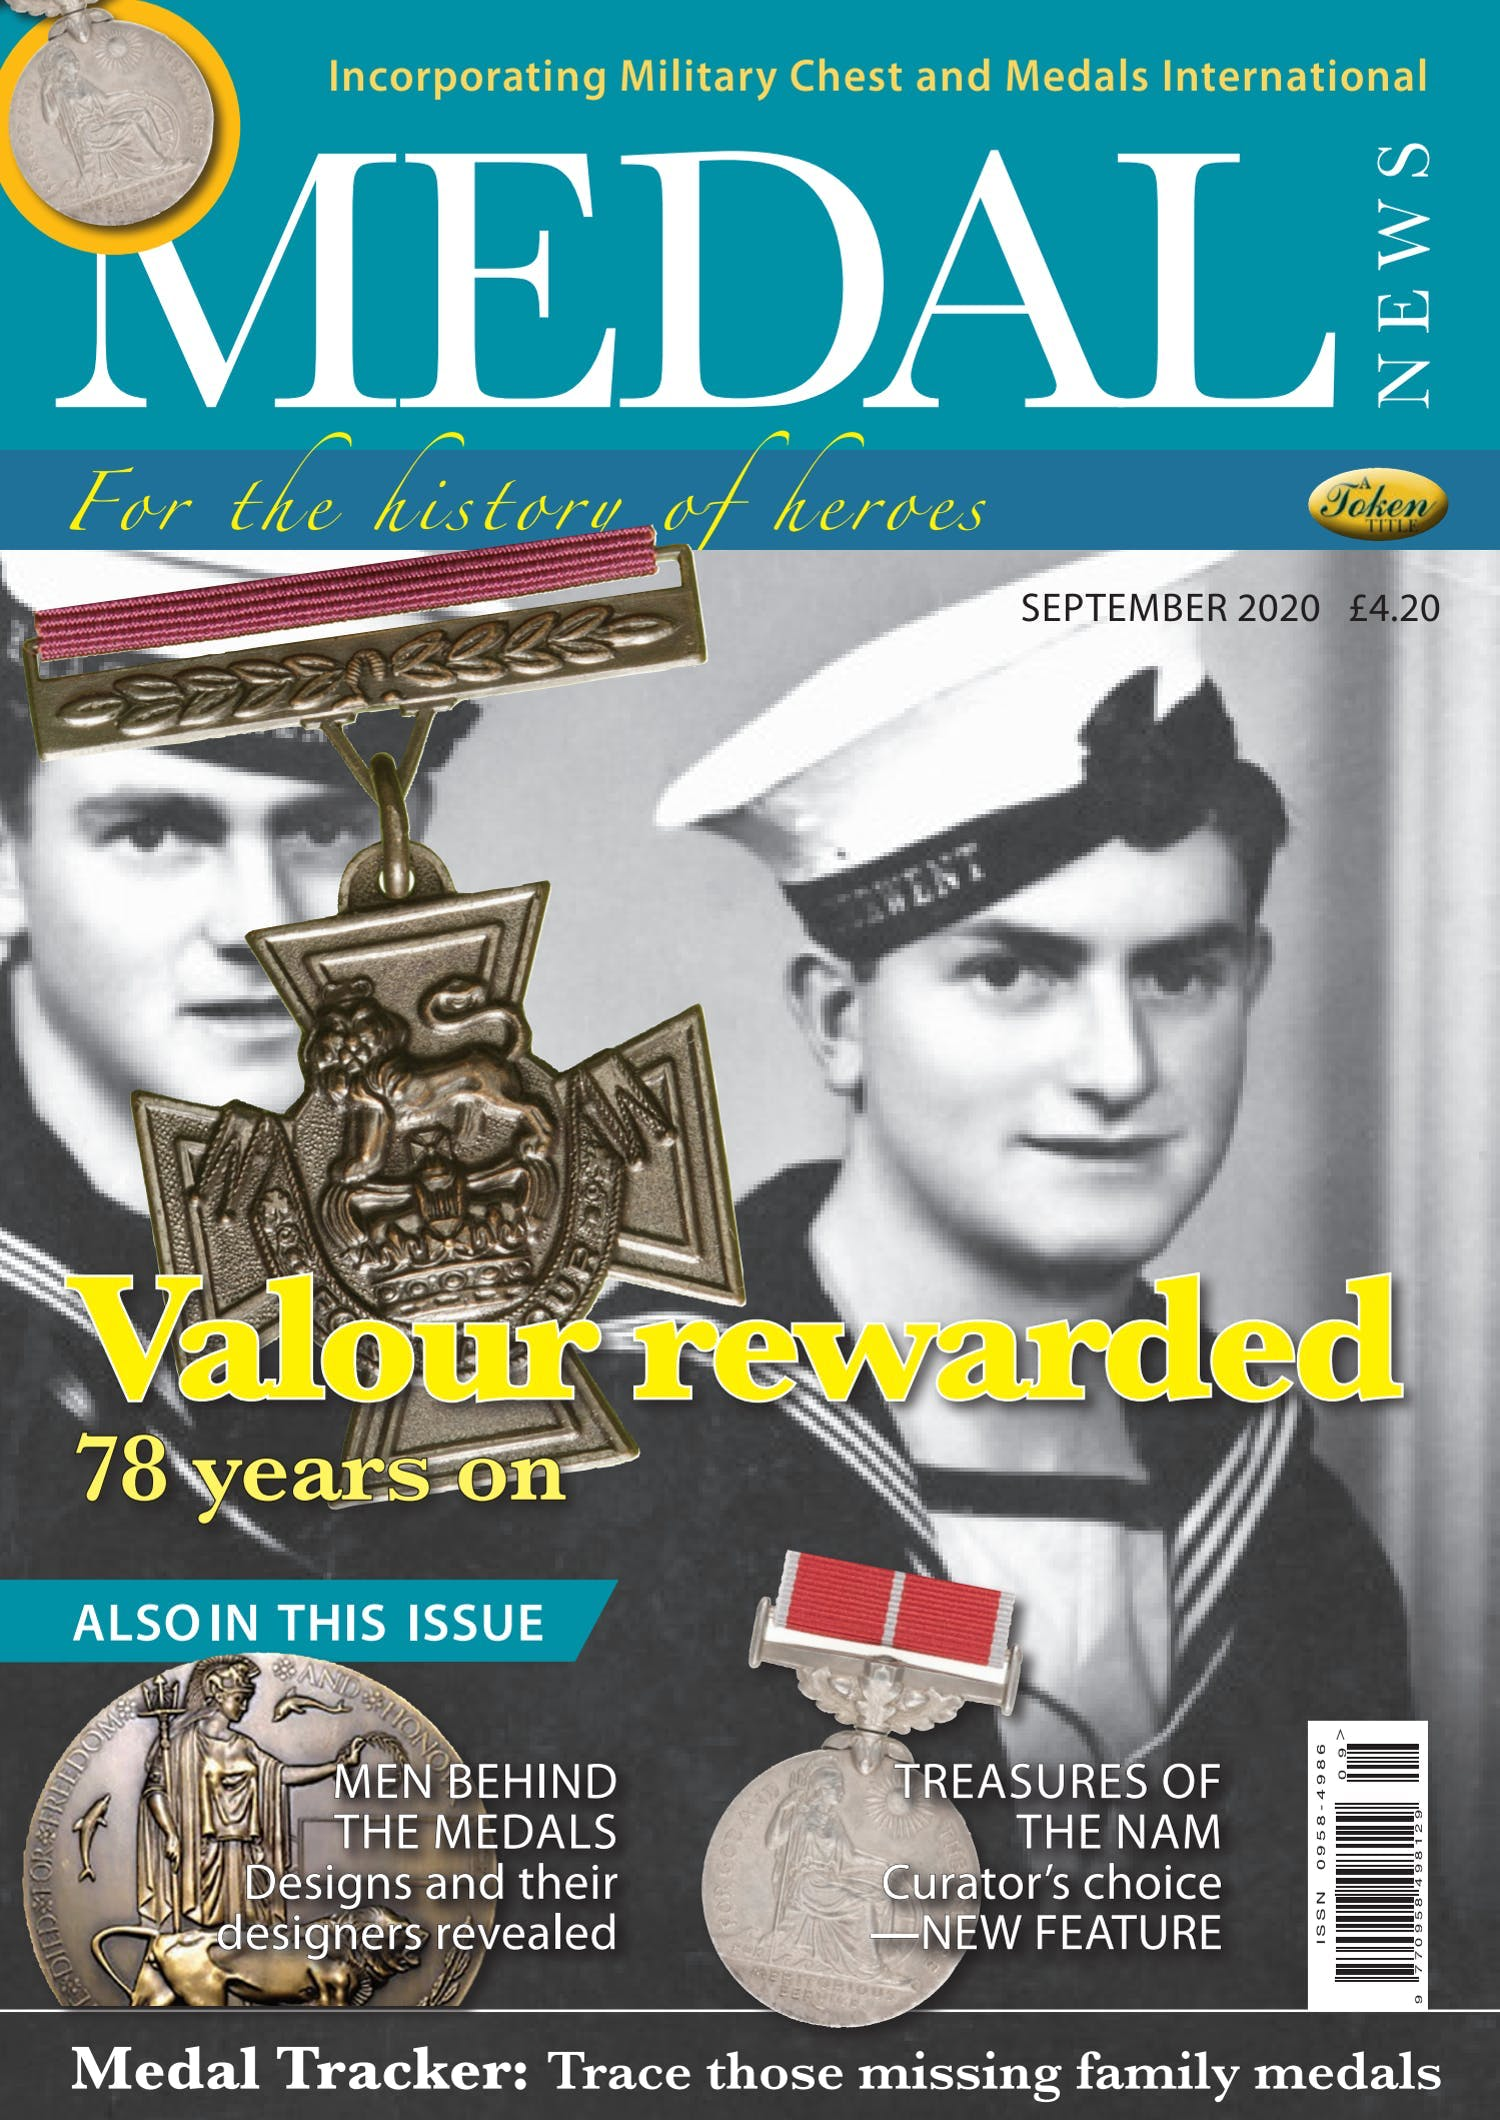 The front cover of Medal News, Volume 58, Number 8, September 2020